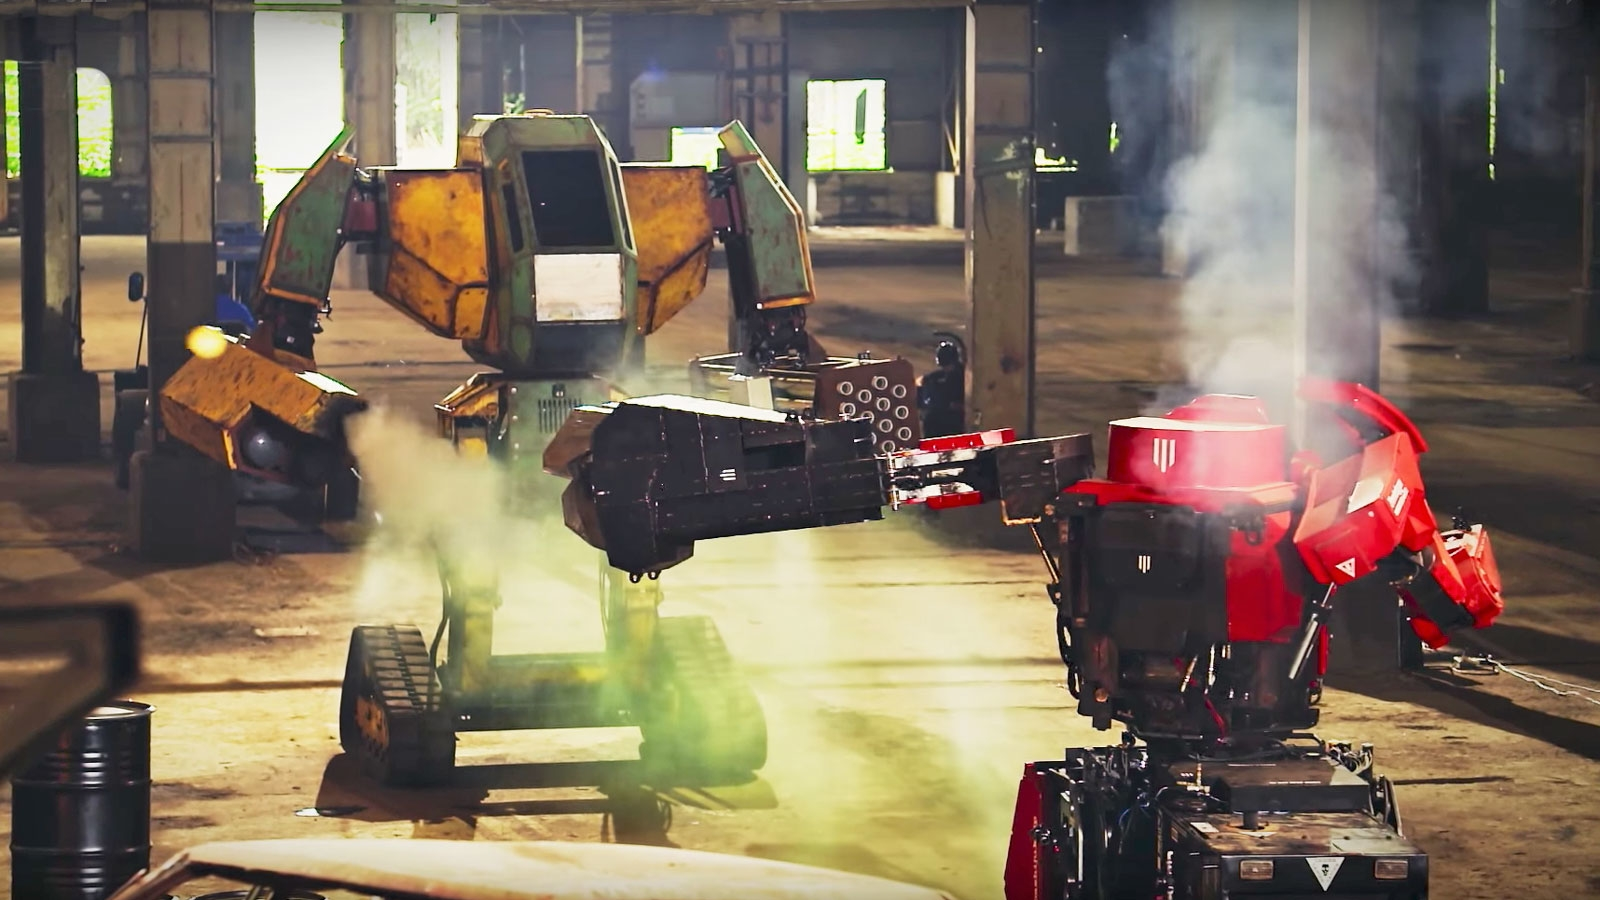 This week's 'live' giant robot battle was fake | DeviceDaily.com